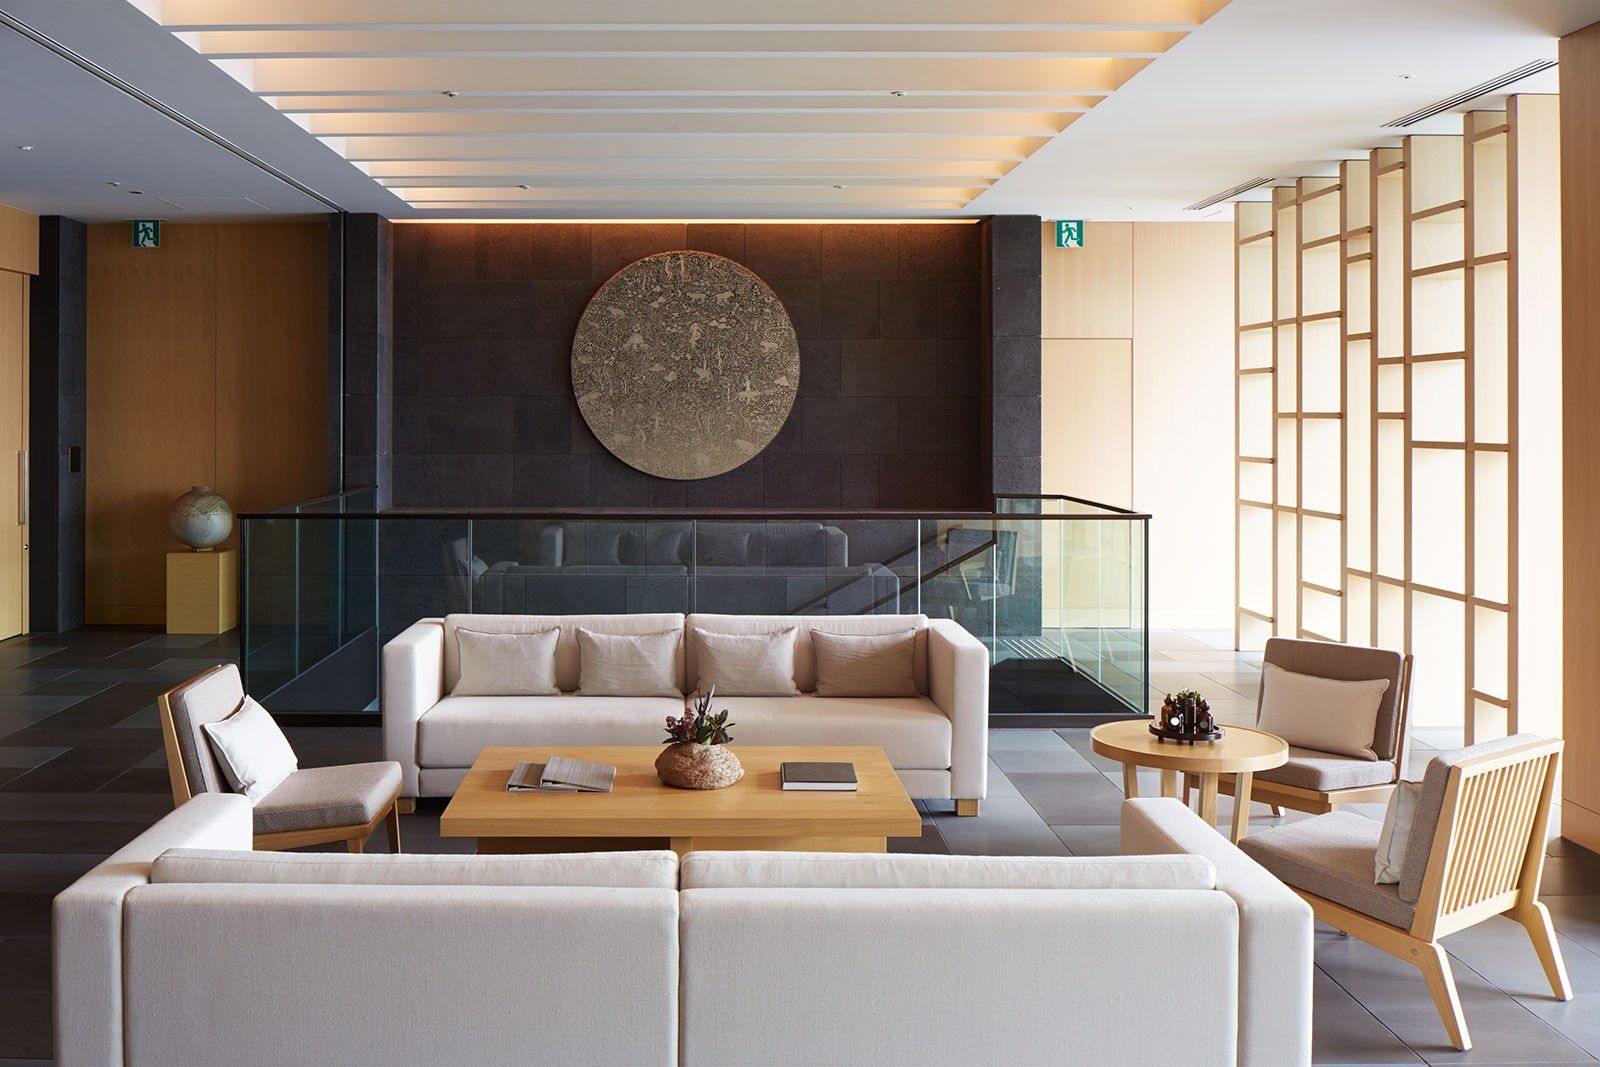 Explore Aman Tokyo Explore The Hotel And Its Surroundings Aman Luxury Rooms Luxury Hotel Interior